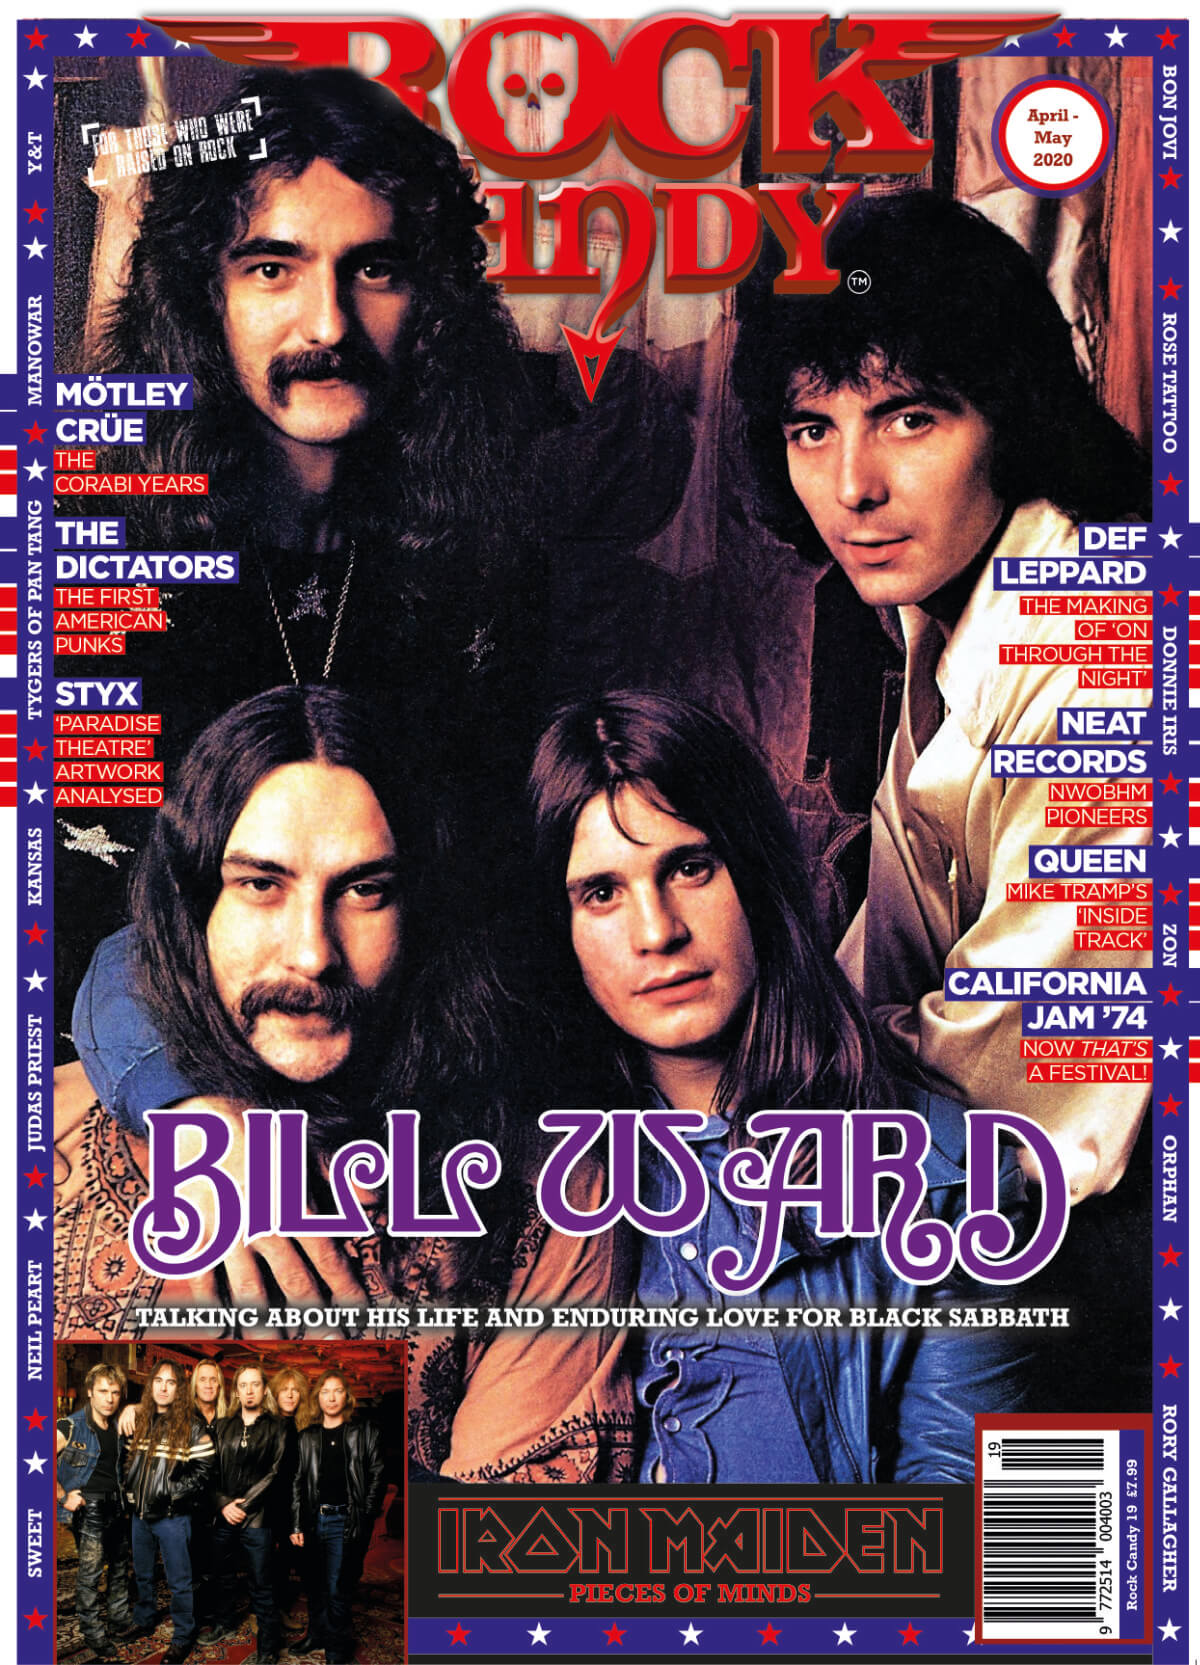 Issue 19 is available right now, featuring our Black Sabbath cover story interview with Bill Ward.